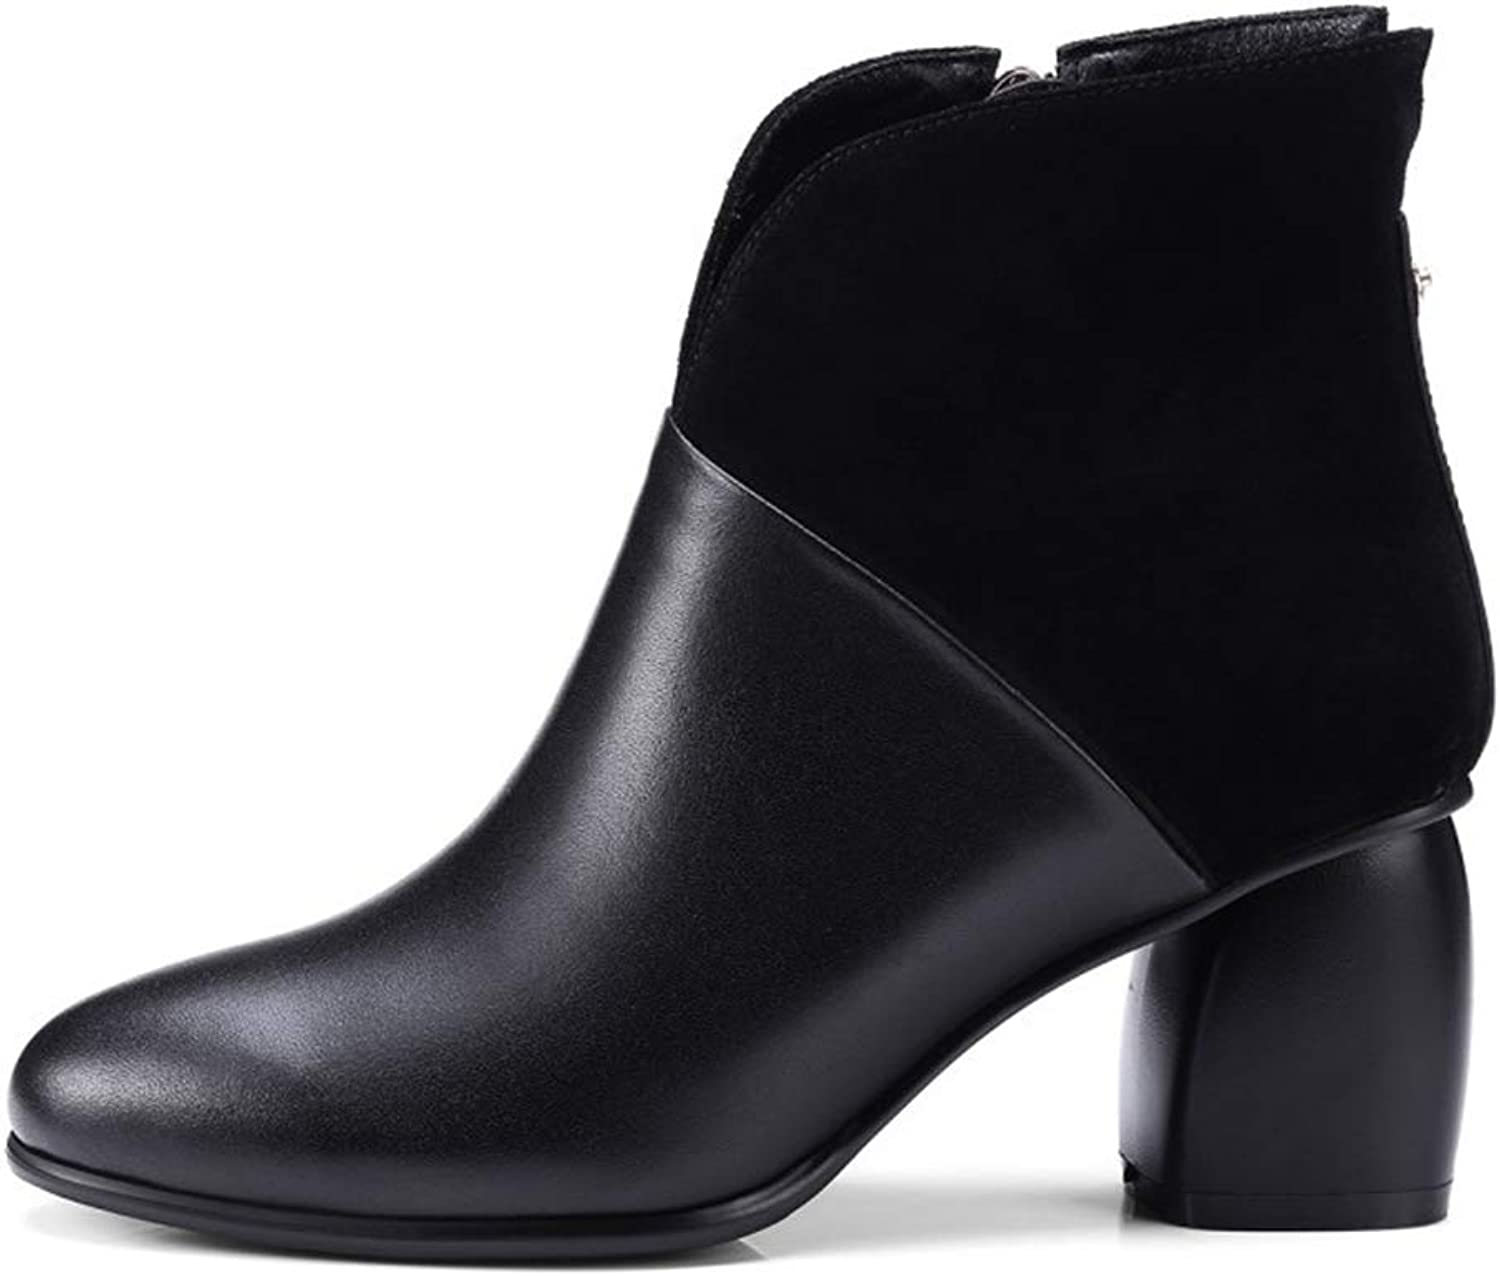 Women's Boots Autumn Winter Leather shoes Thick Heel Ladies' Boots Fashion Bare Boots Wedding Party & Evening Dress shoes (color   A, Size   35)